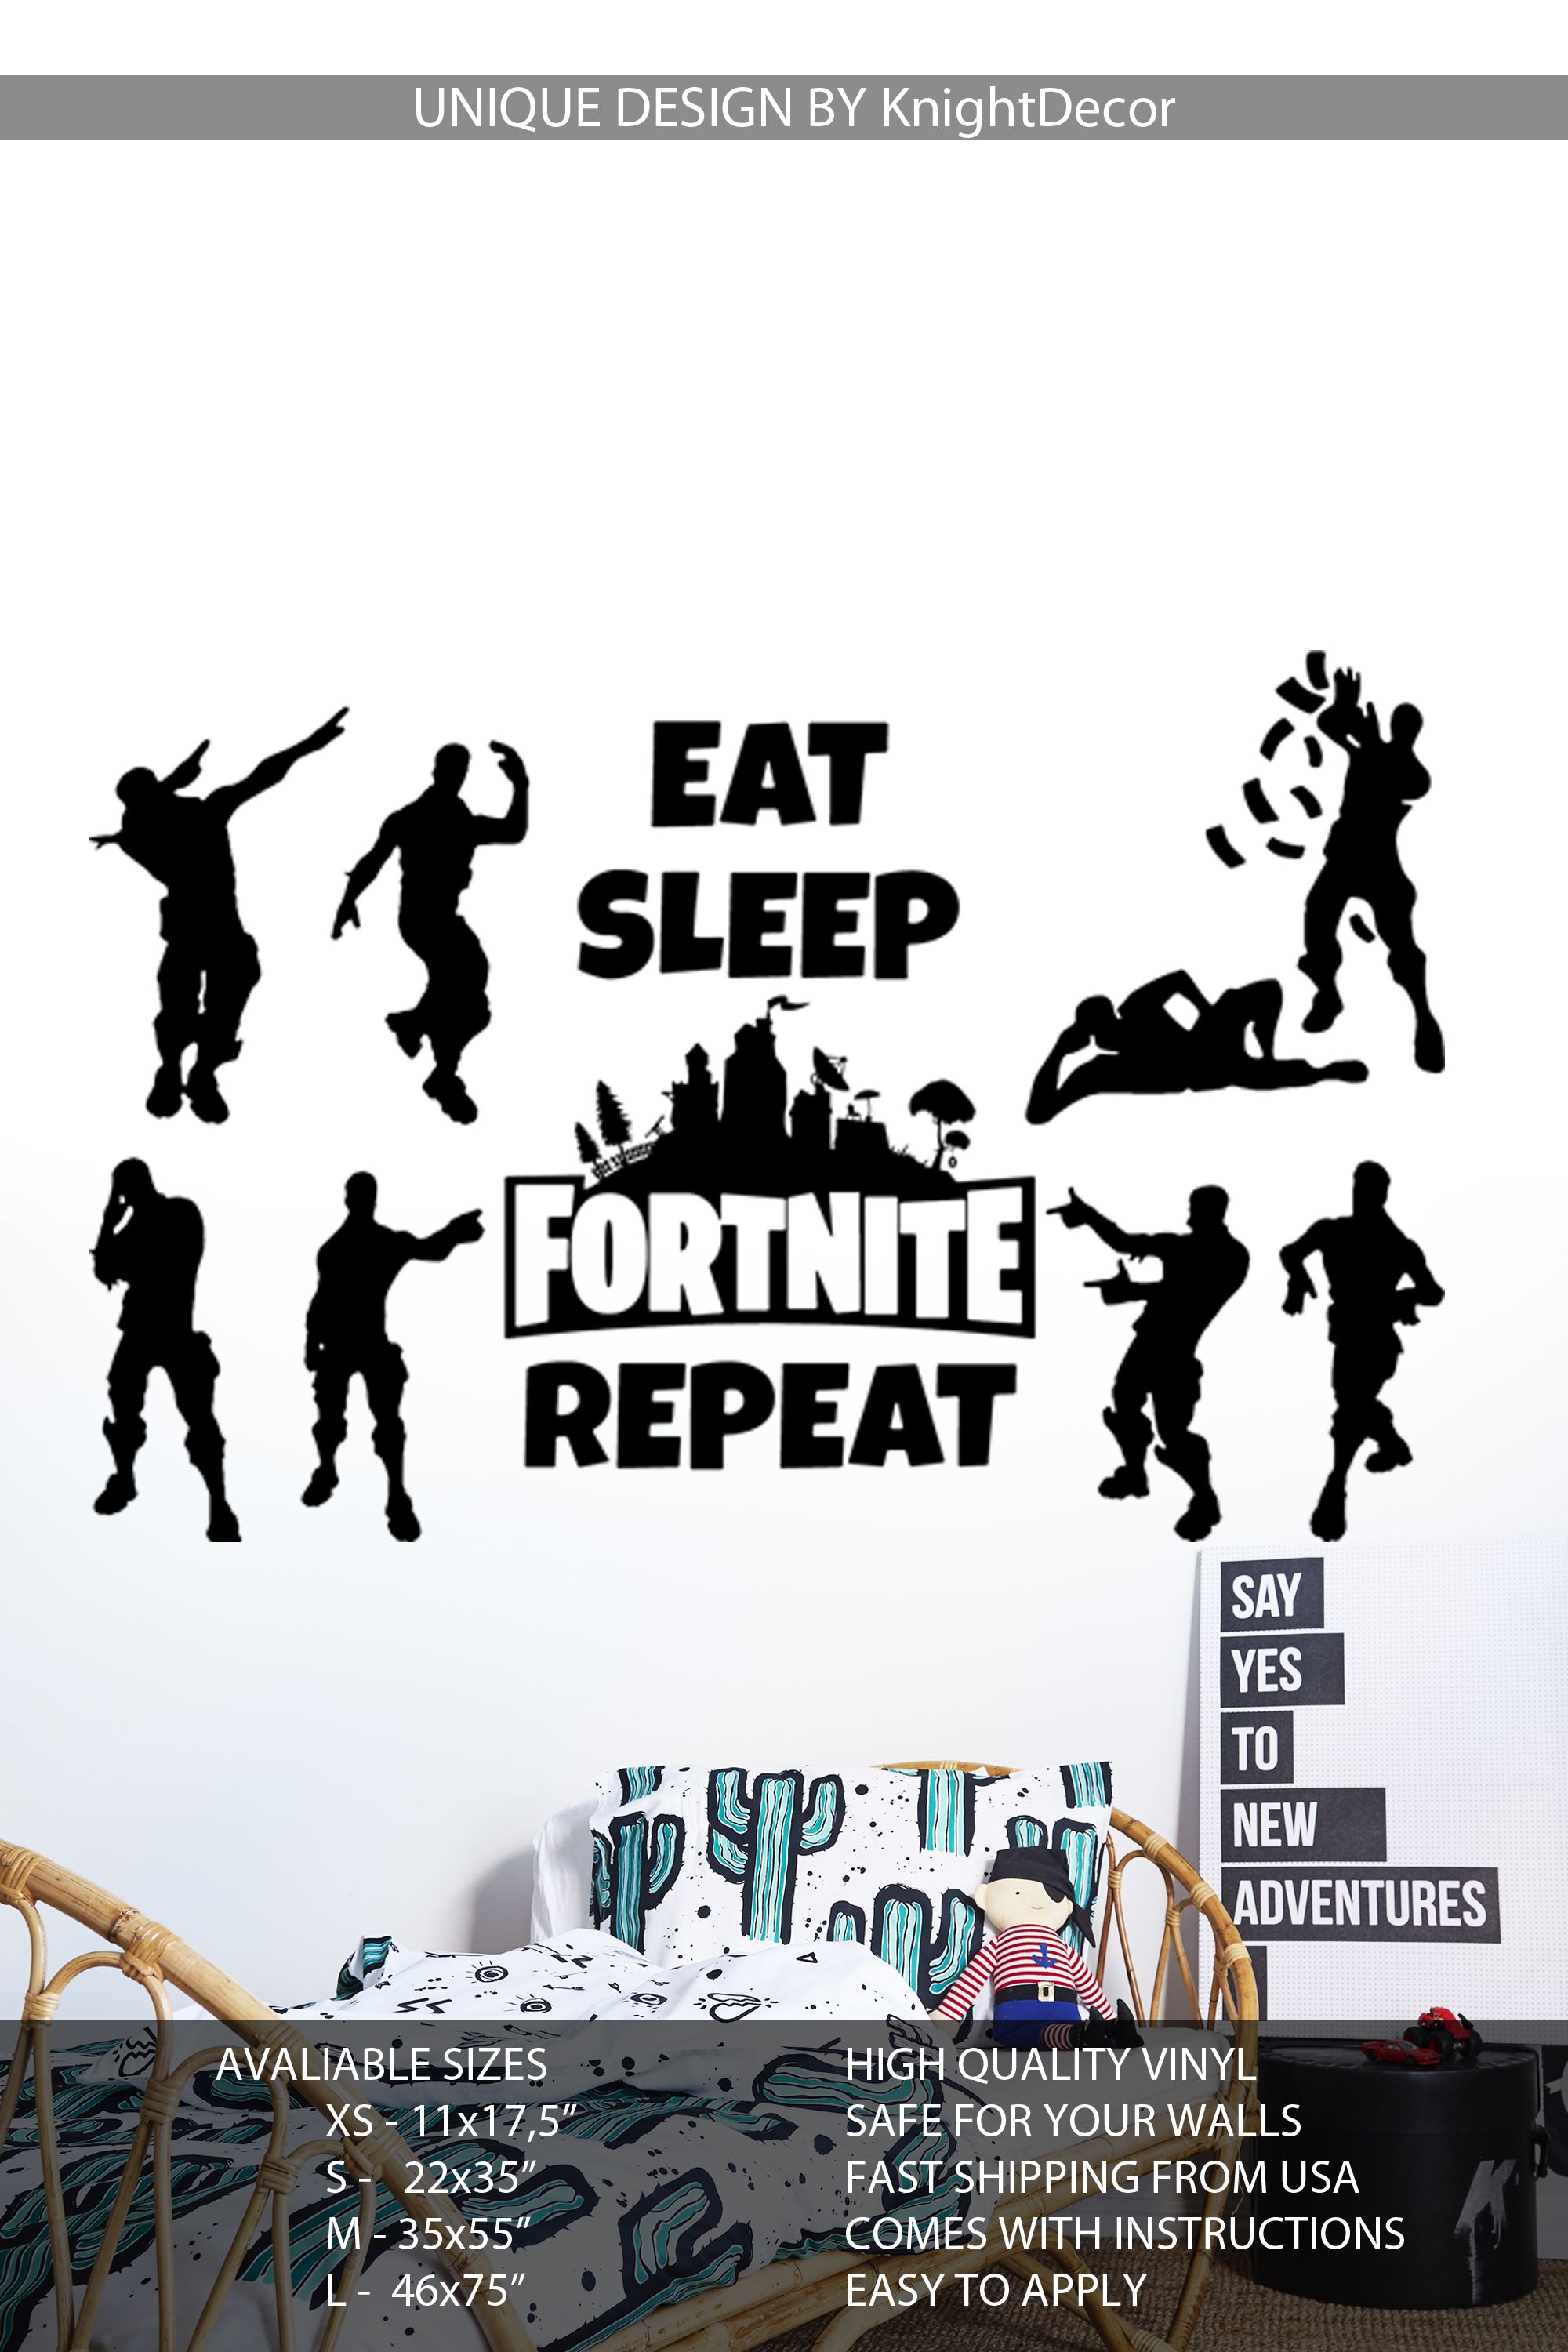 Fortnite Wall Decal Fortnite Vinyl Sticker Gaming Sticker Wall Decal Fortnite Battle Royale Wall Decals Vinyl Sticker Living Room Decals